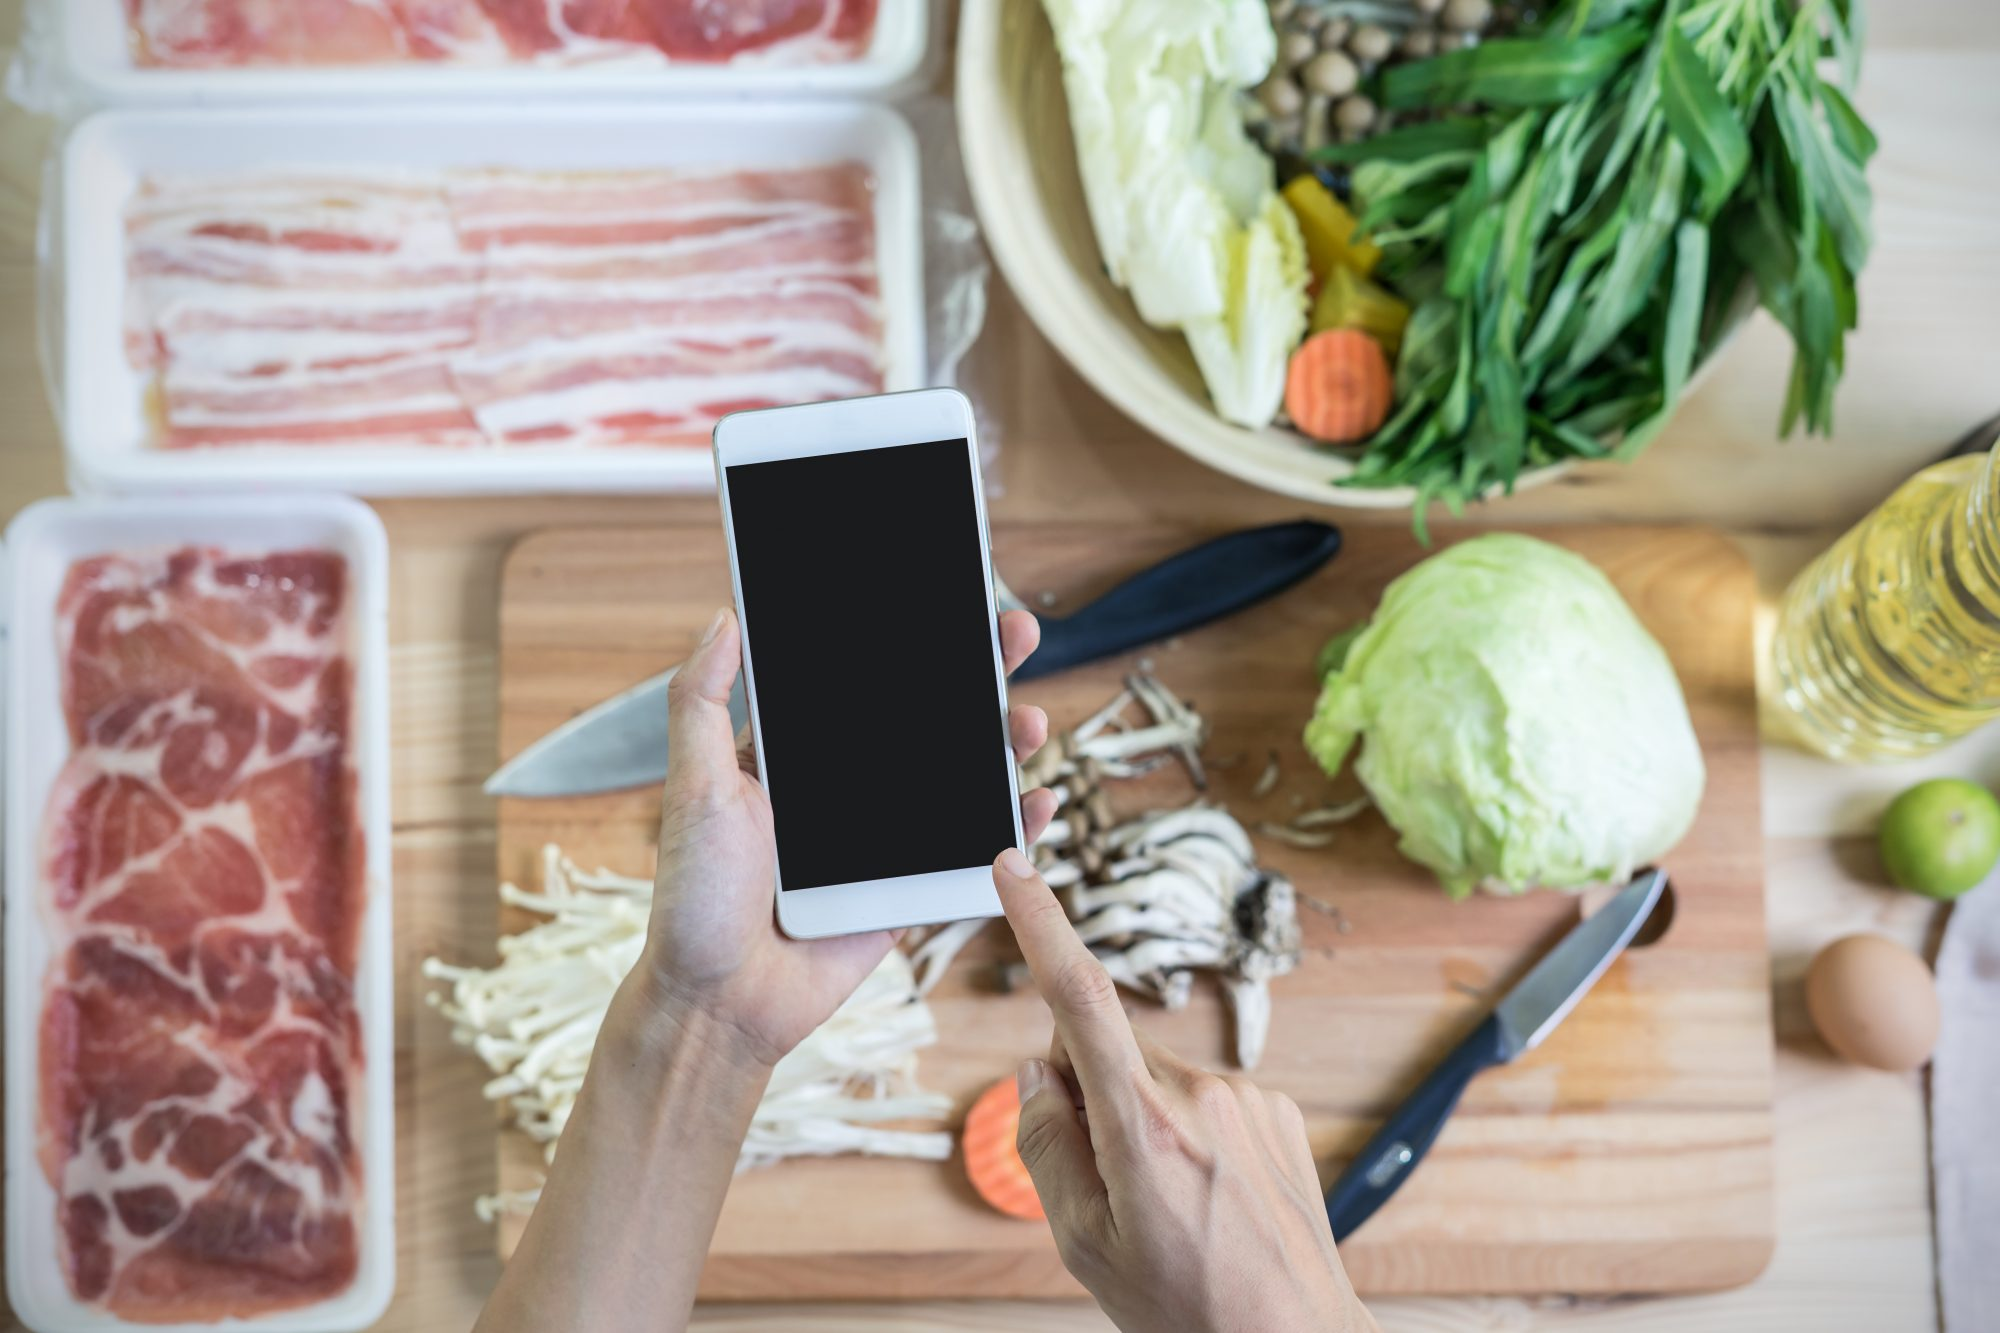 getty-cooking-with-smartphone-image